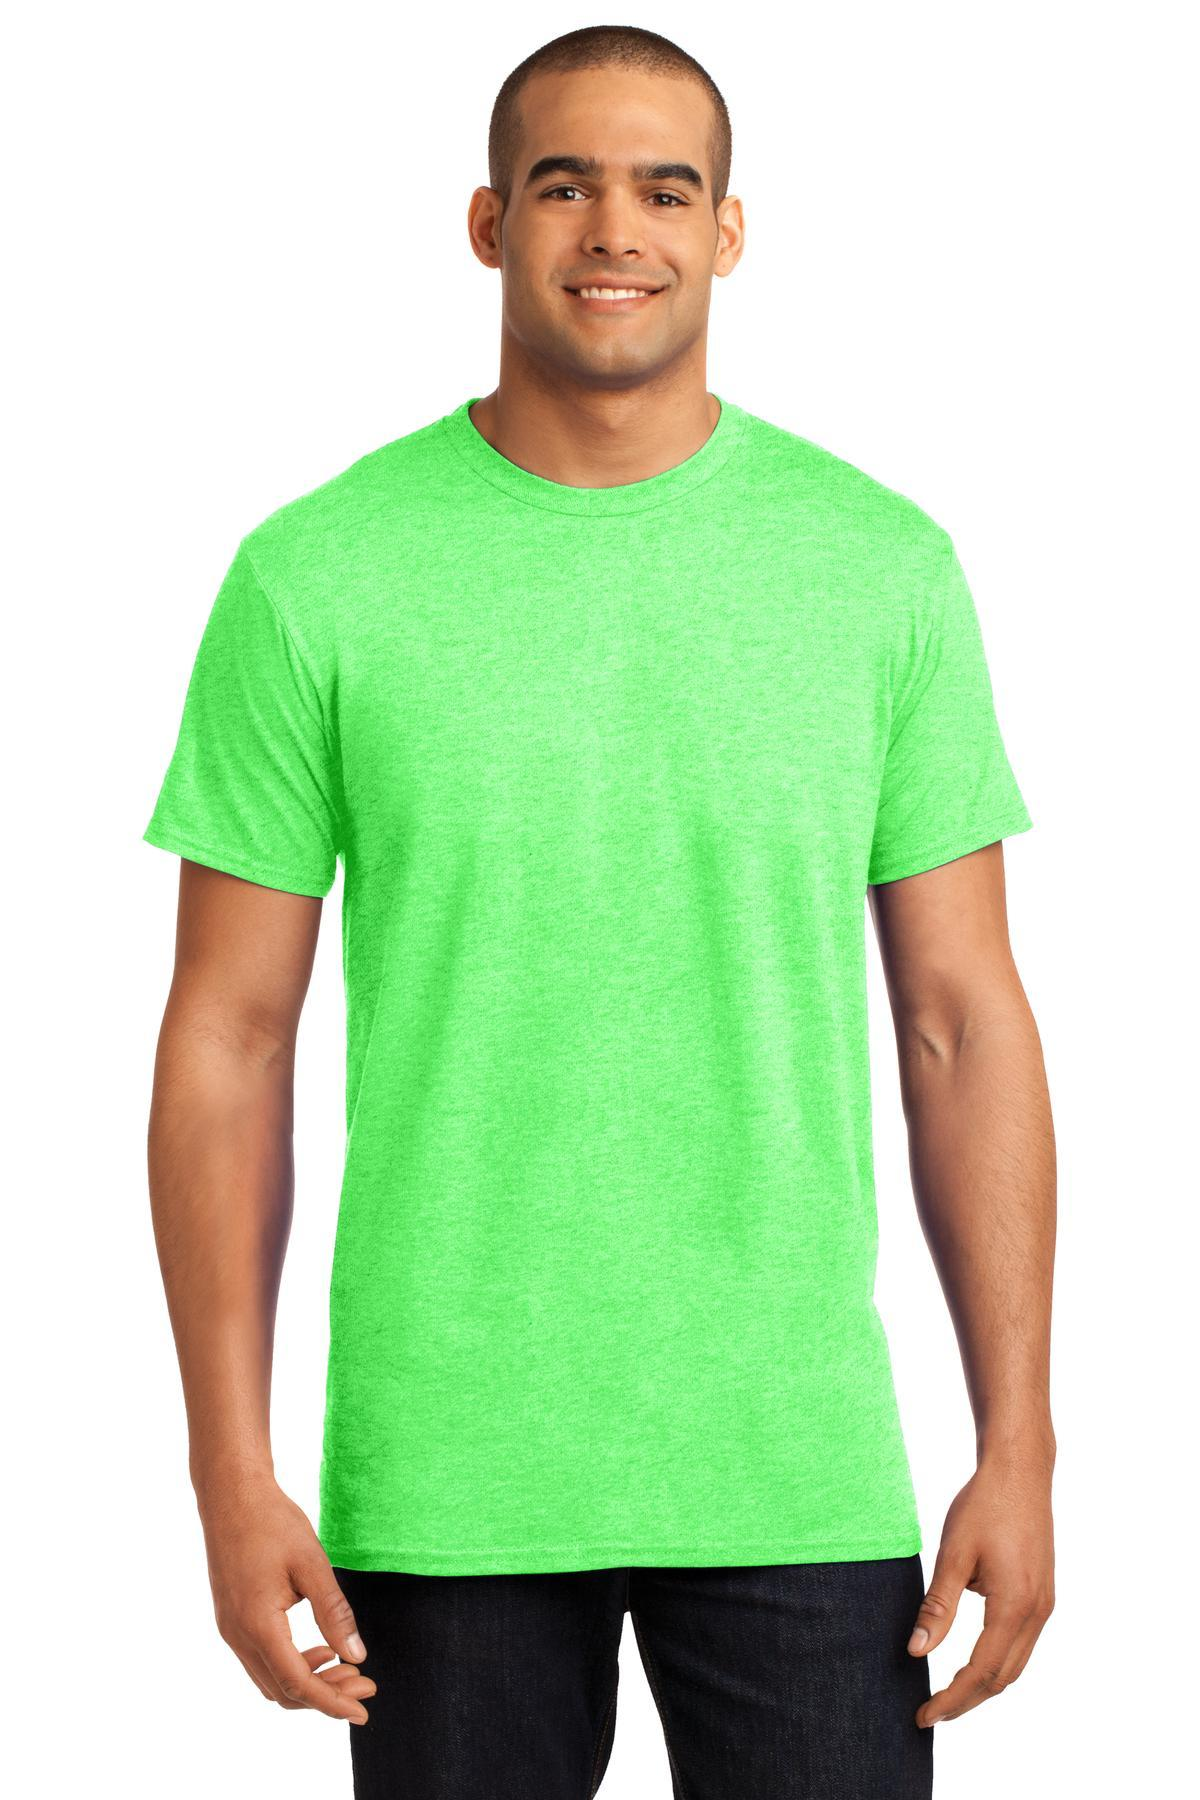 Neon Lime Heather - Hanes 4200